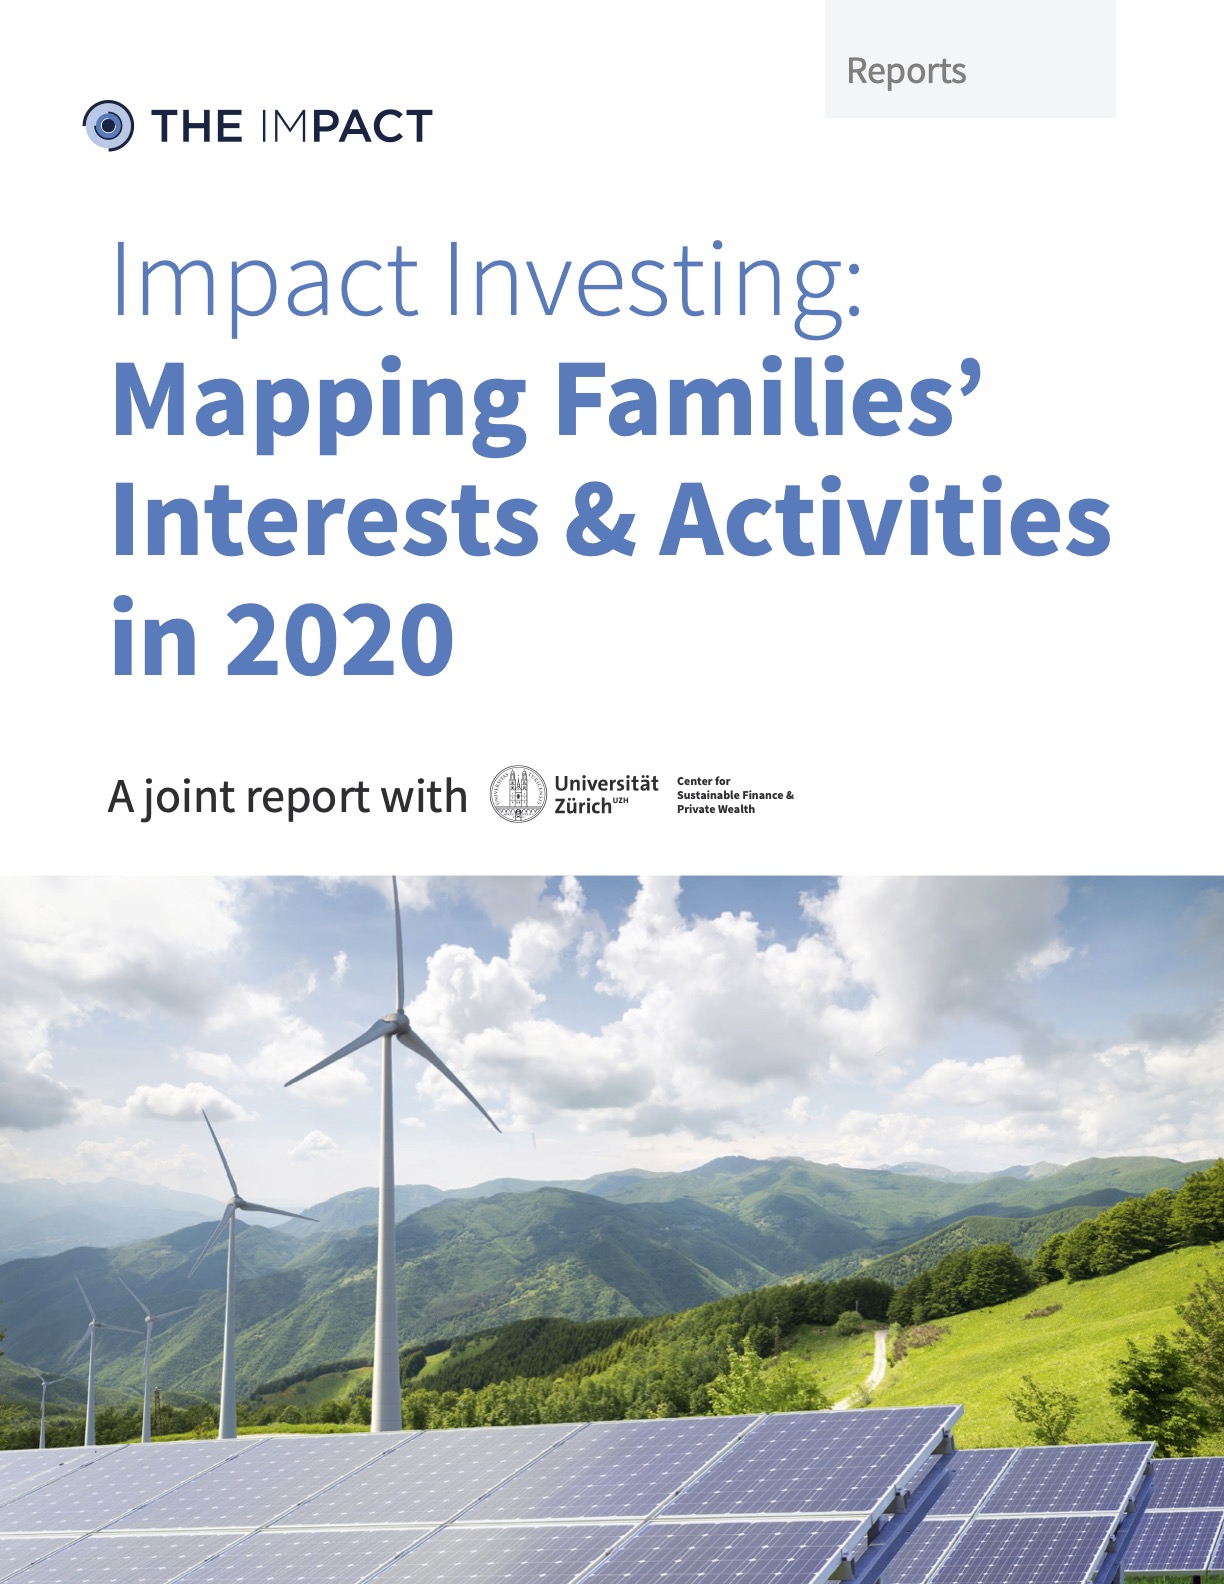 Mapping Families' Impact Investing in 2019. A report by The ImPact.